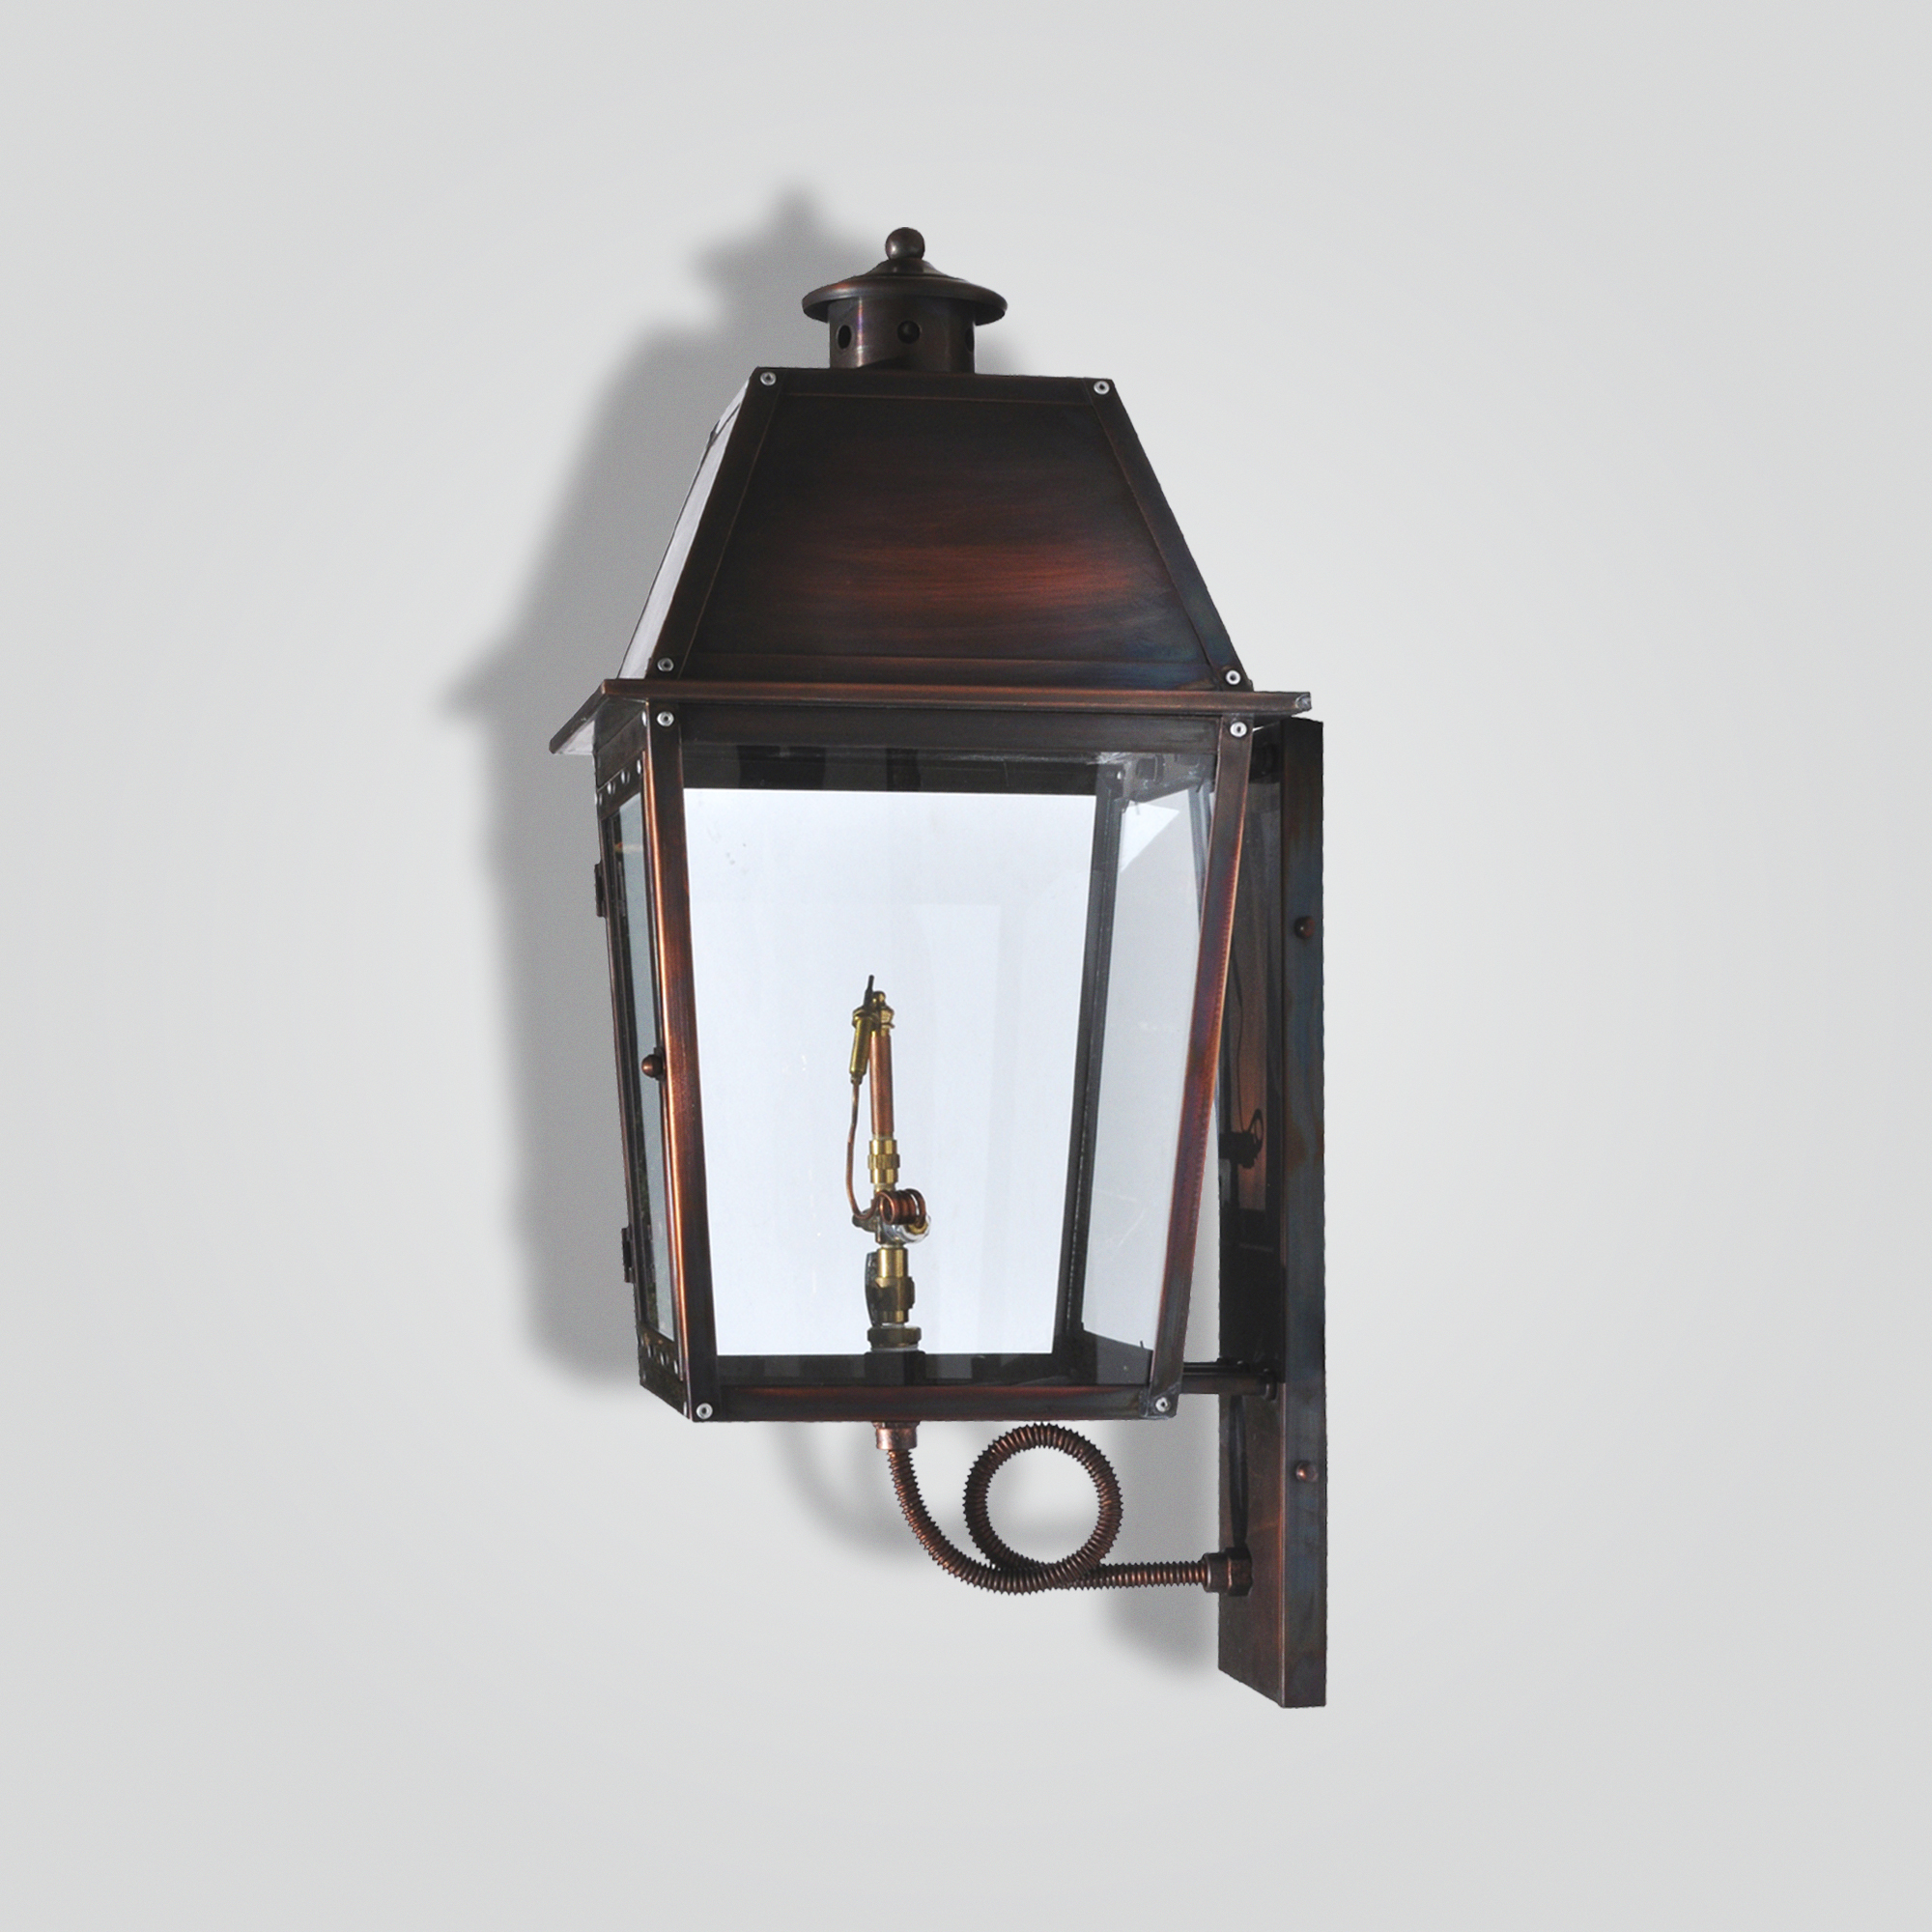 1044-ga-br-sh-copper-plate-cr – ADG Lighting Collection